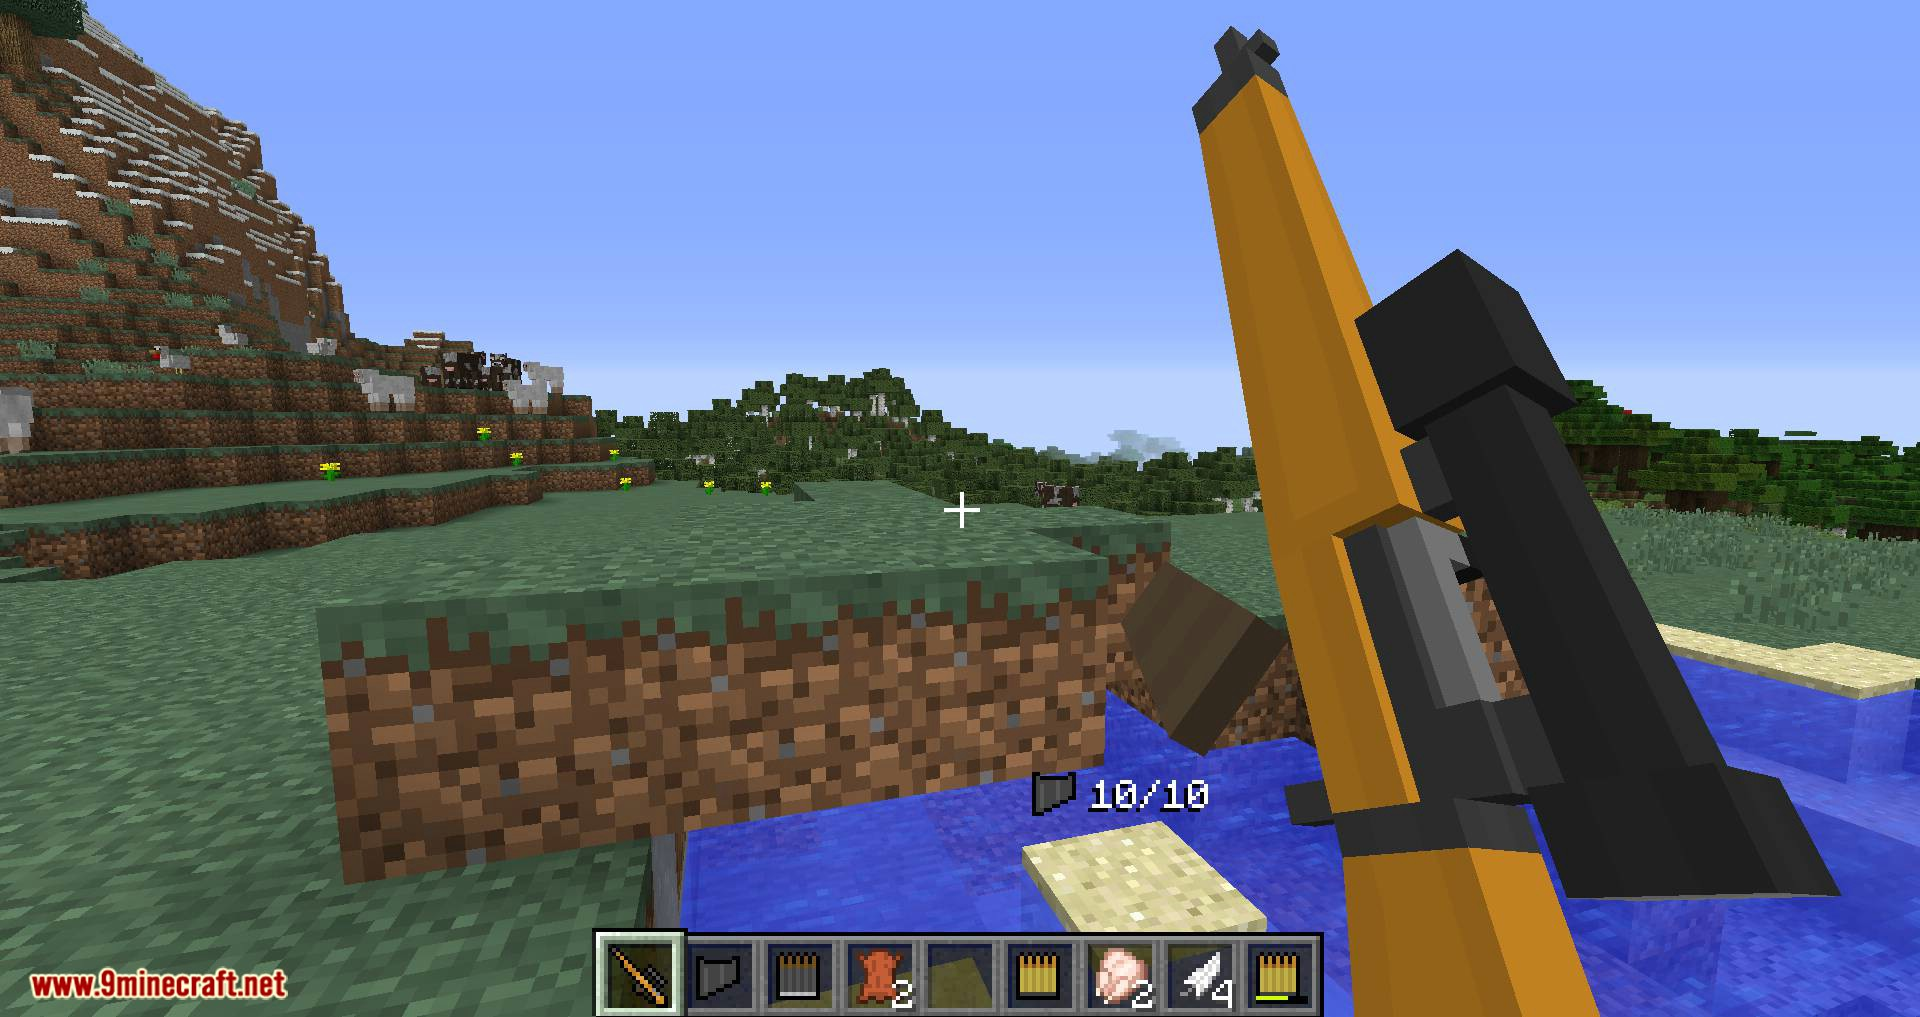 Flan_s Content Pack Call of Duty 2 Bolt-Action Rifles mod for minecraft 08